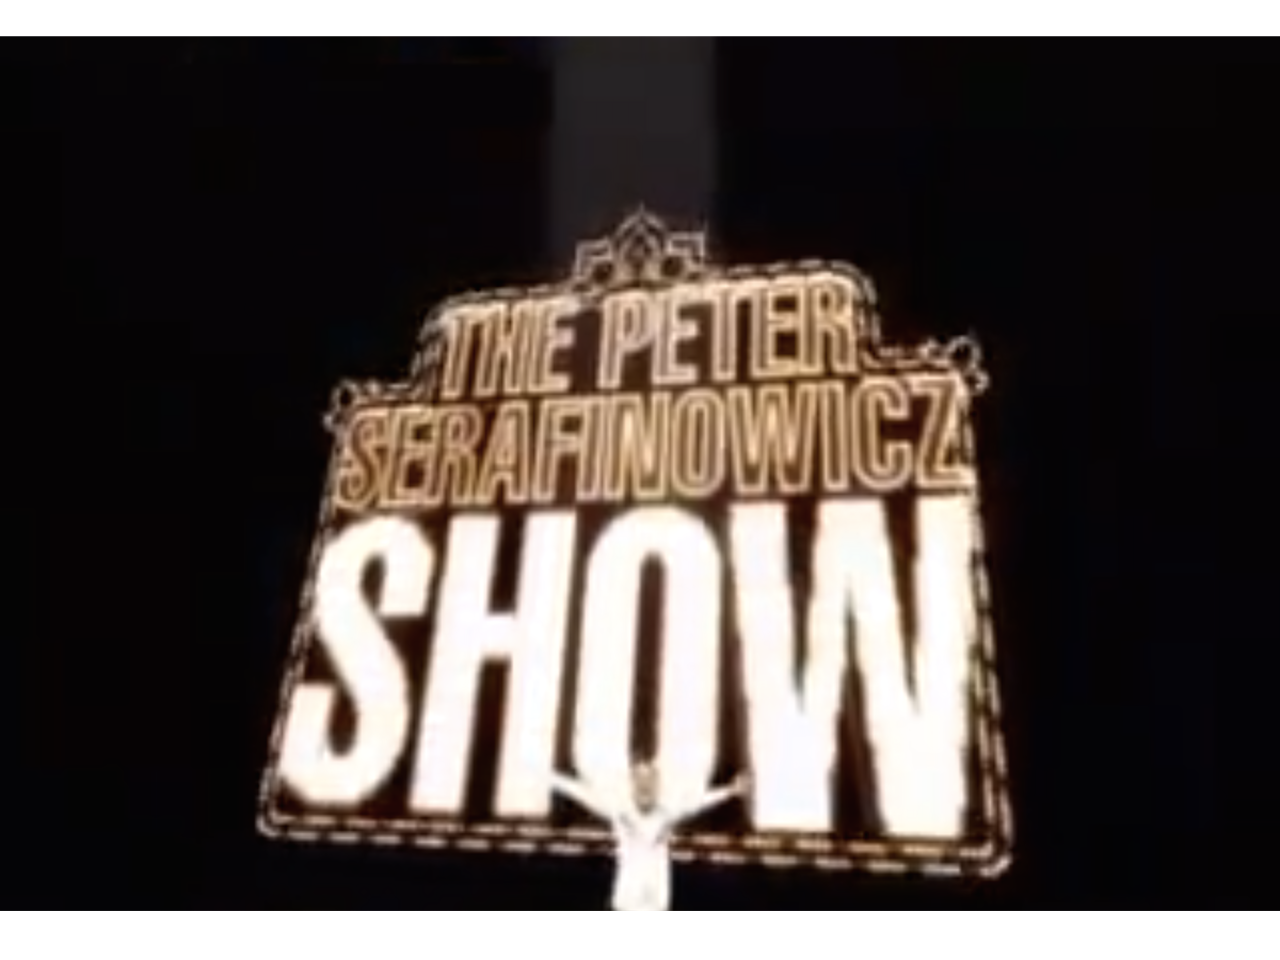 PETER SERAFINOWICZ - CHRISTMAS SPECIAL